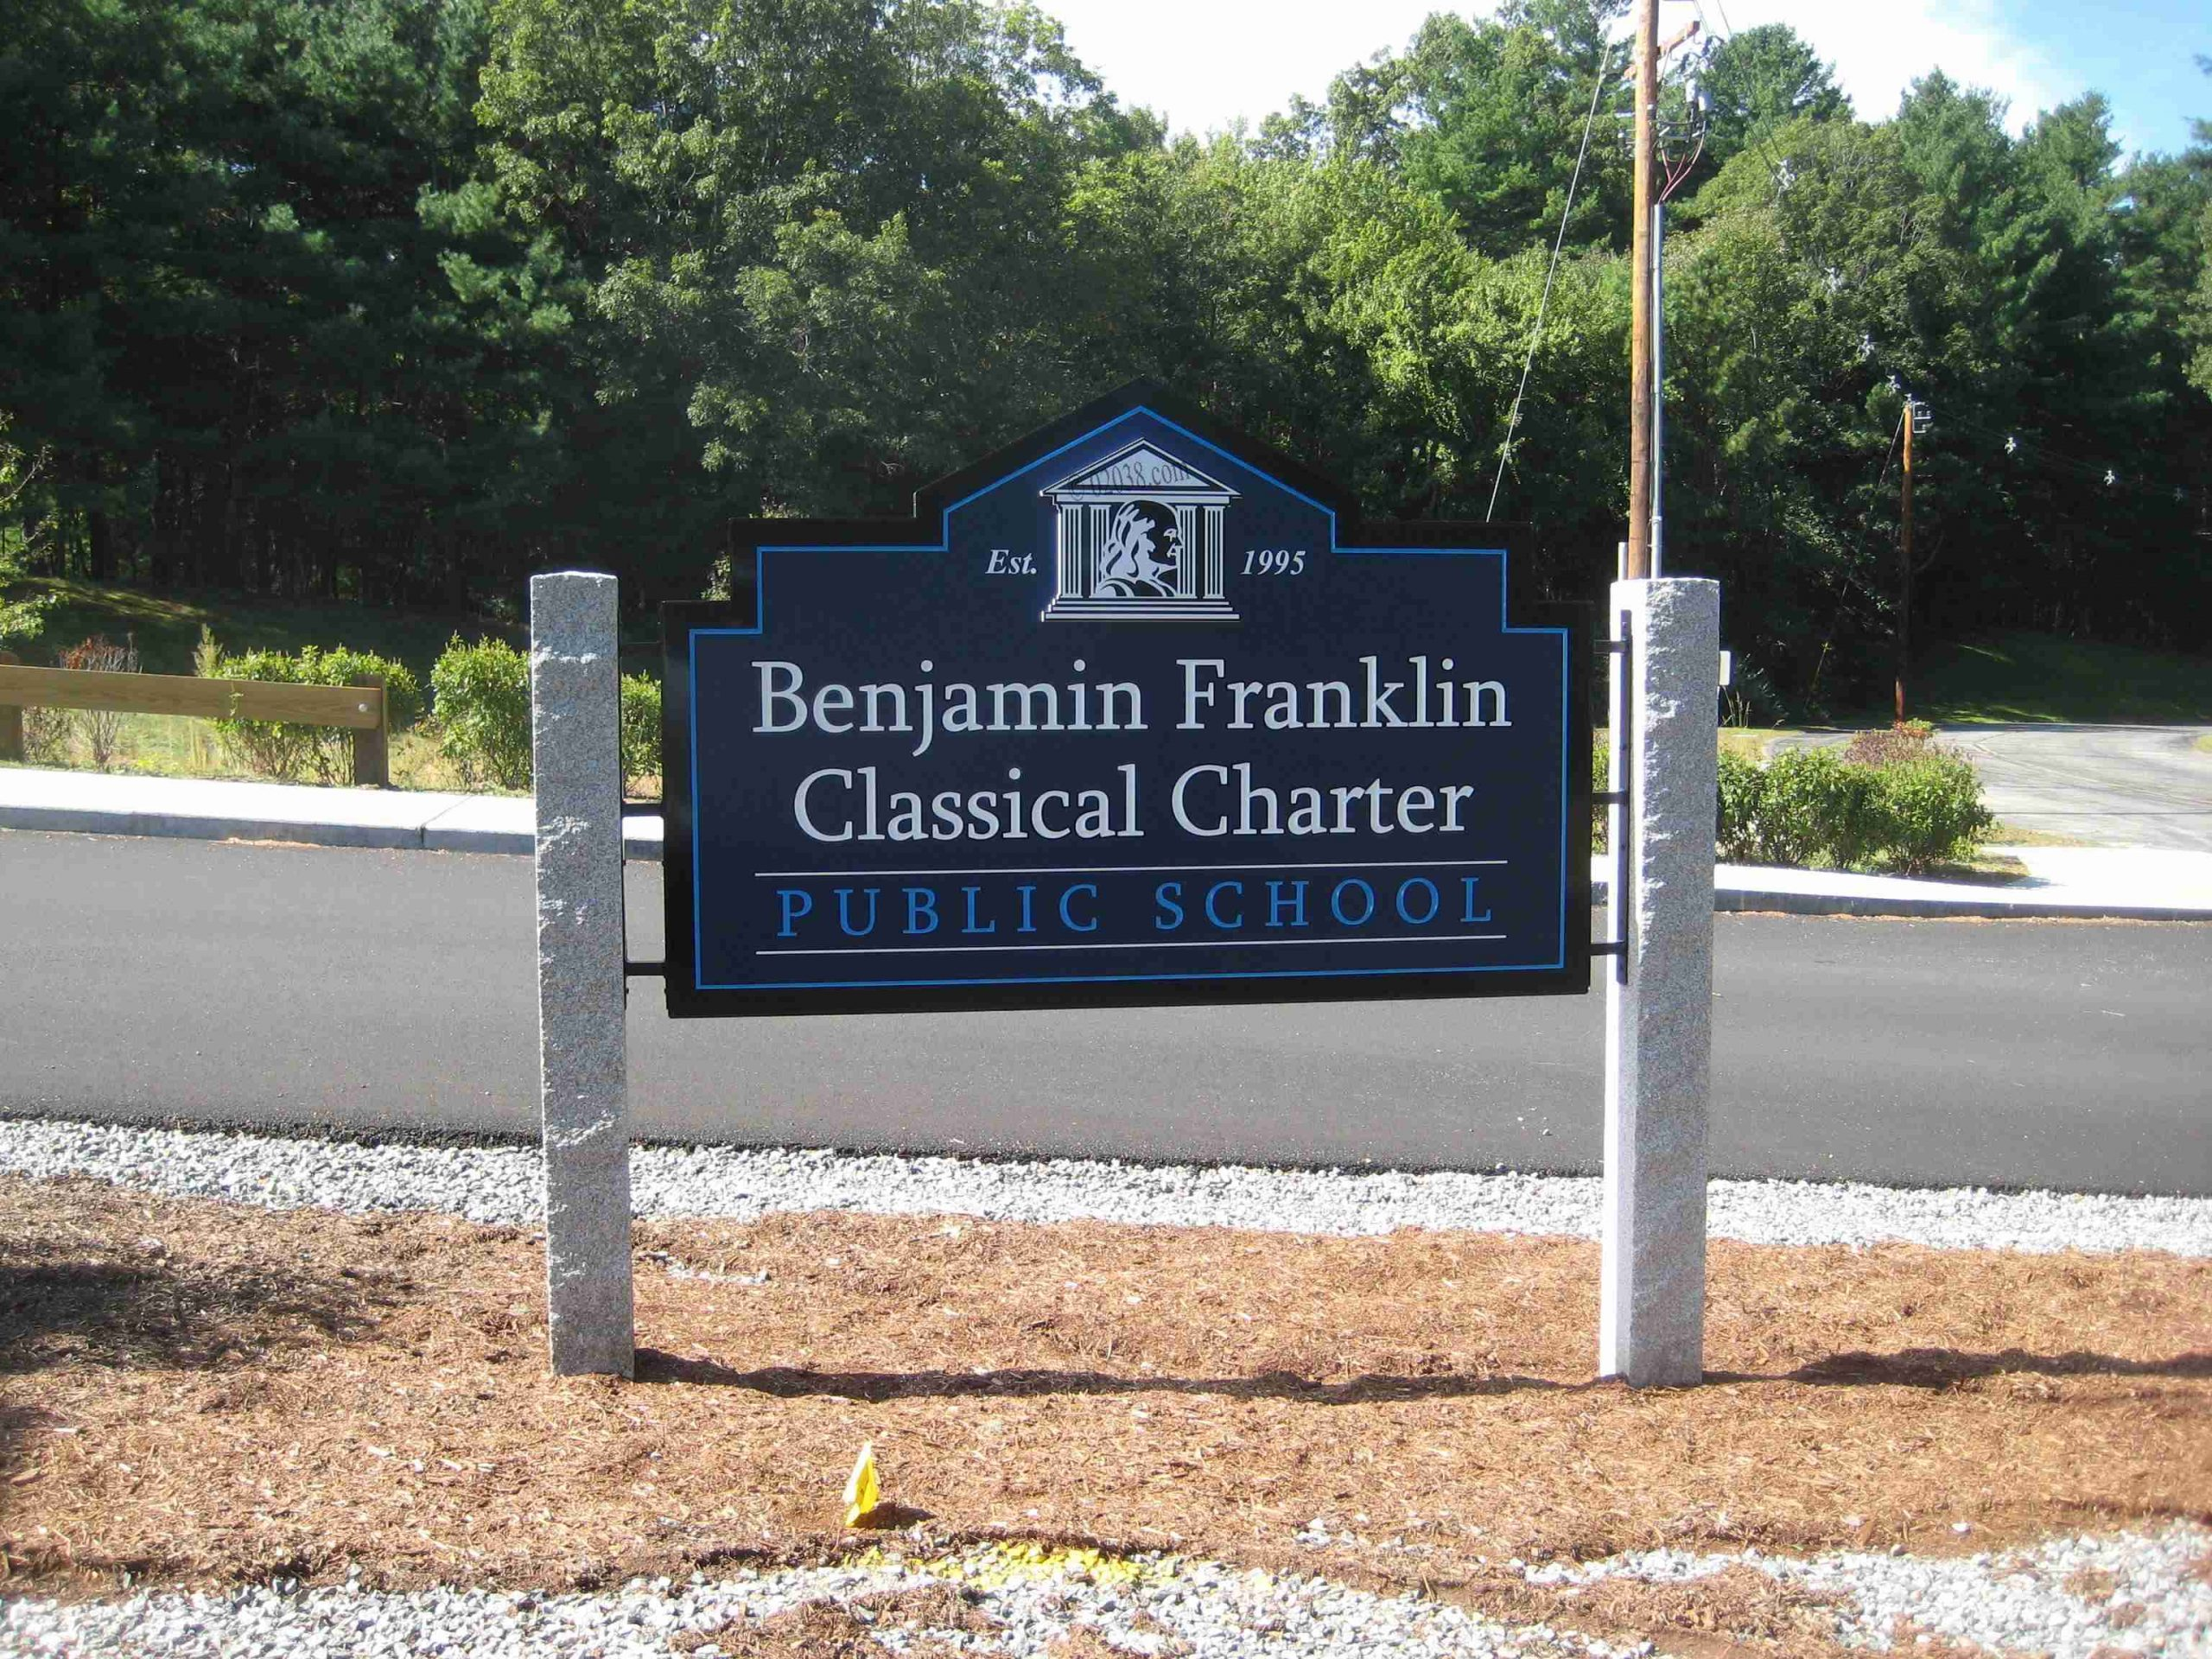 Benjamin Franklin Classical Charter School